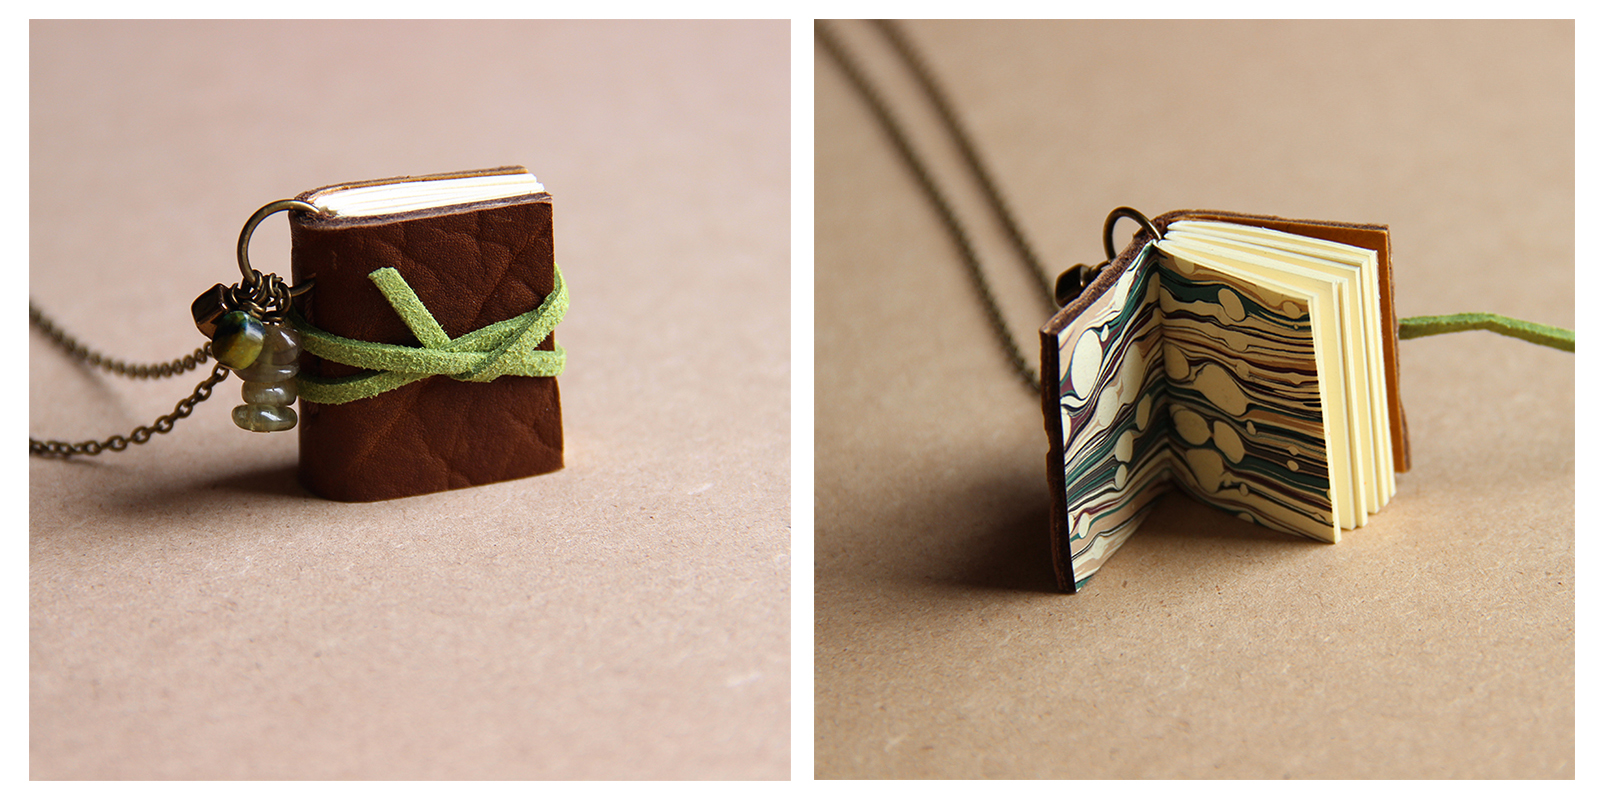 Exterior and Interior of a Book Necklace